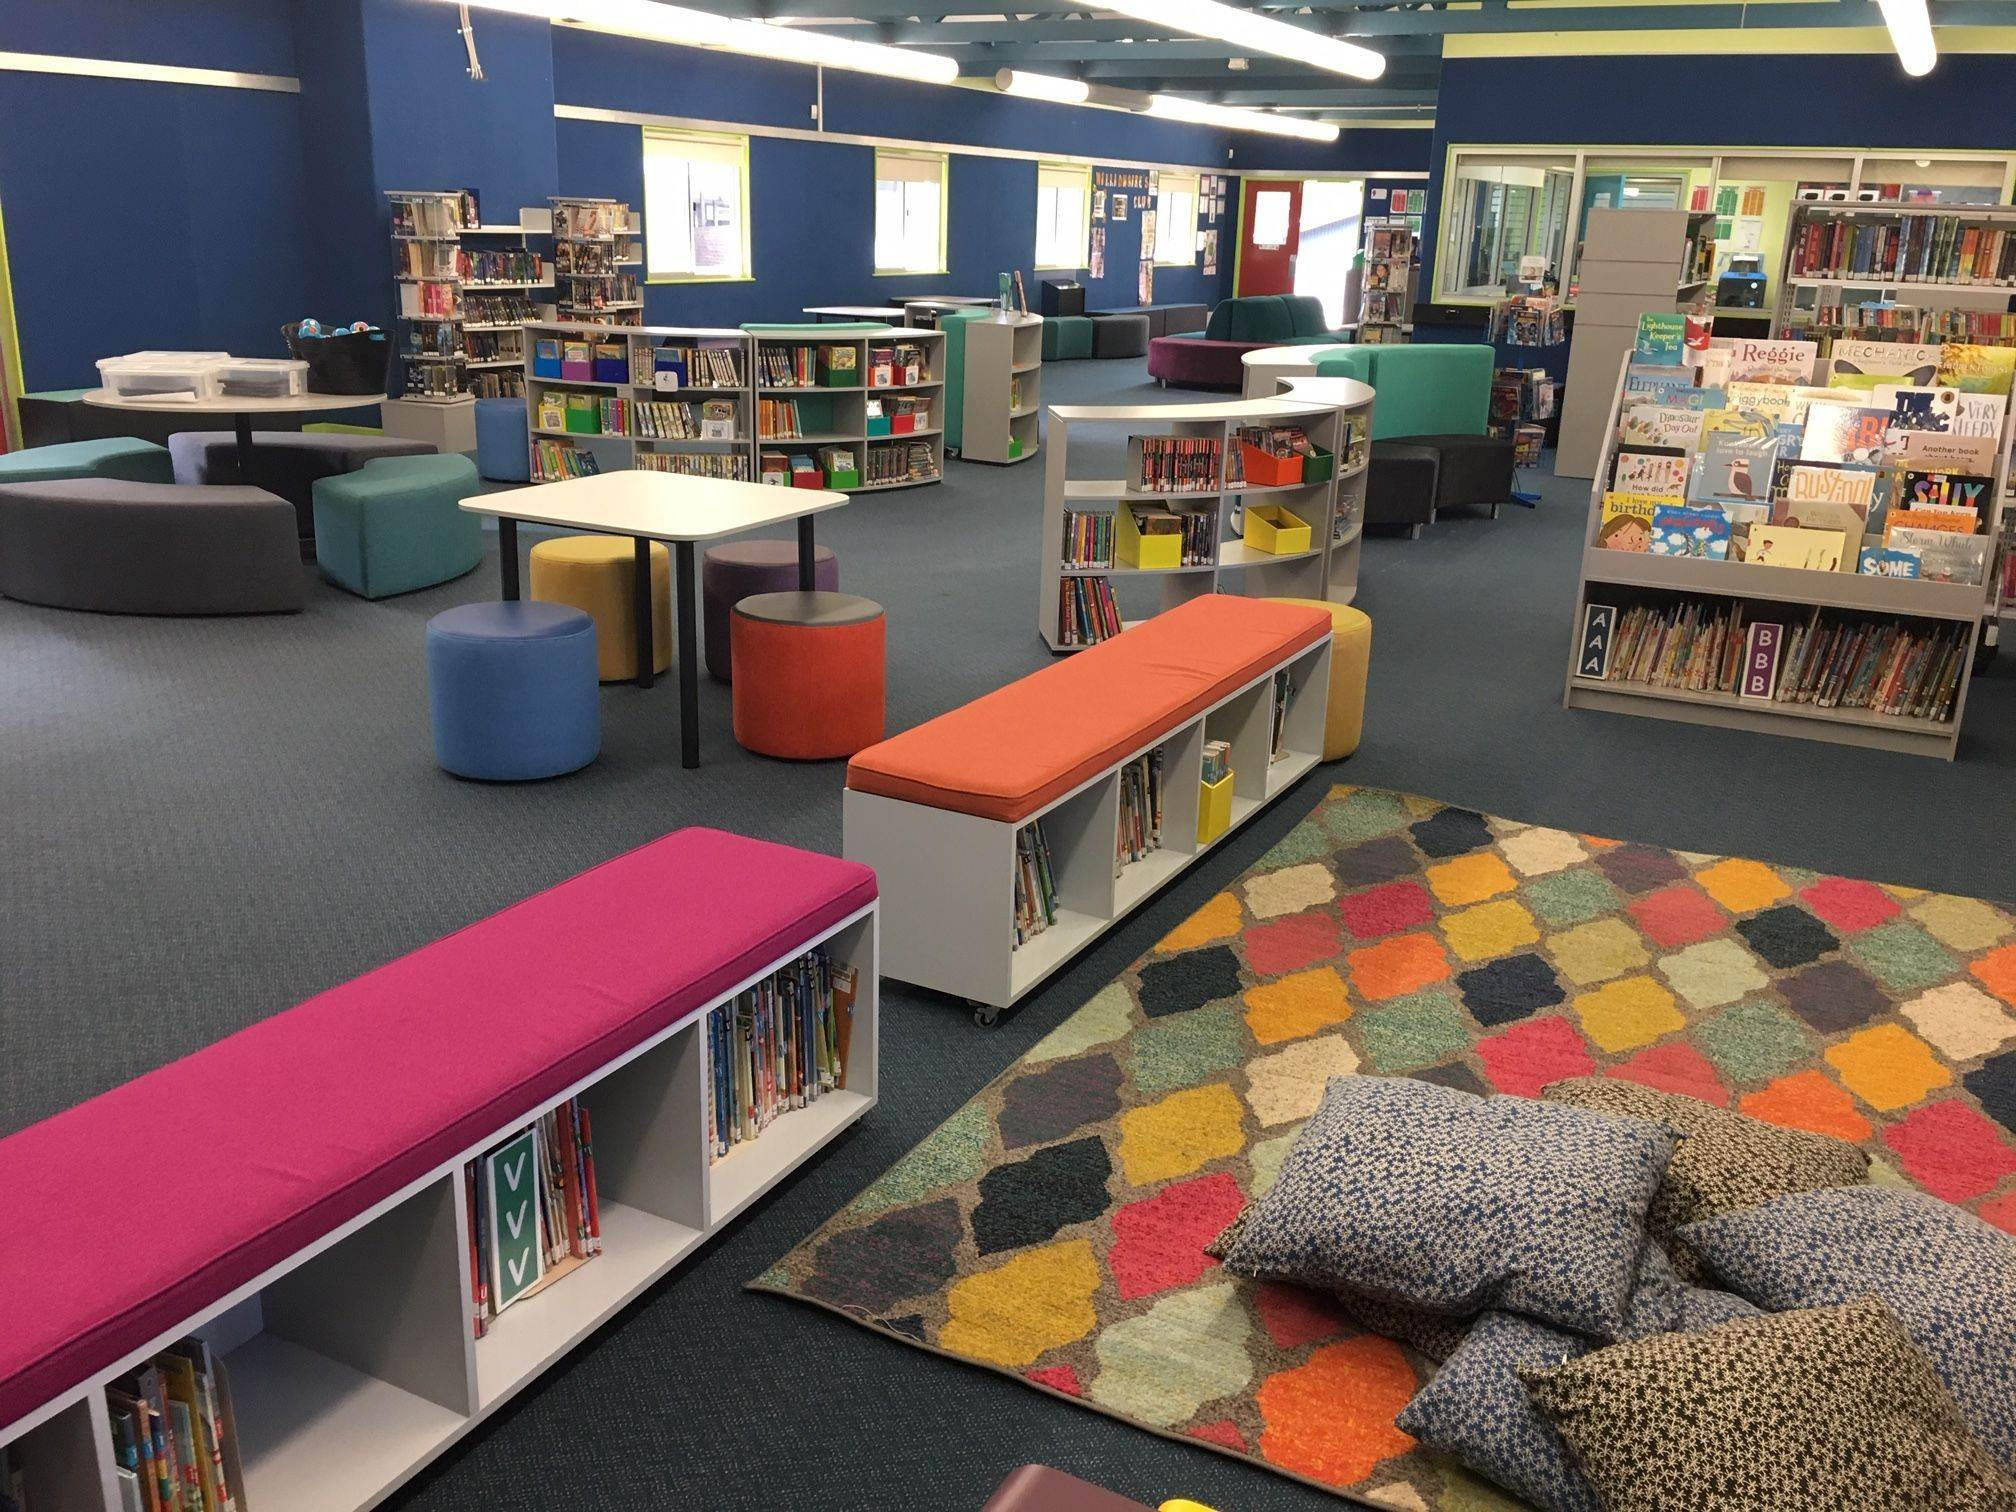 Primary school library with tables lounges and book cases